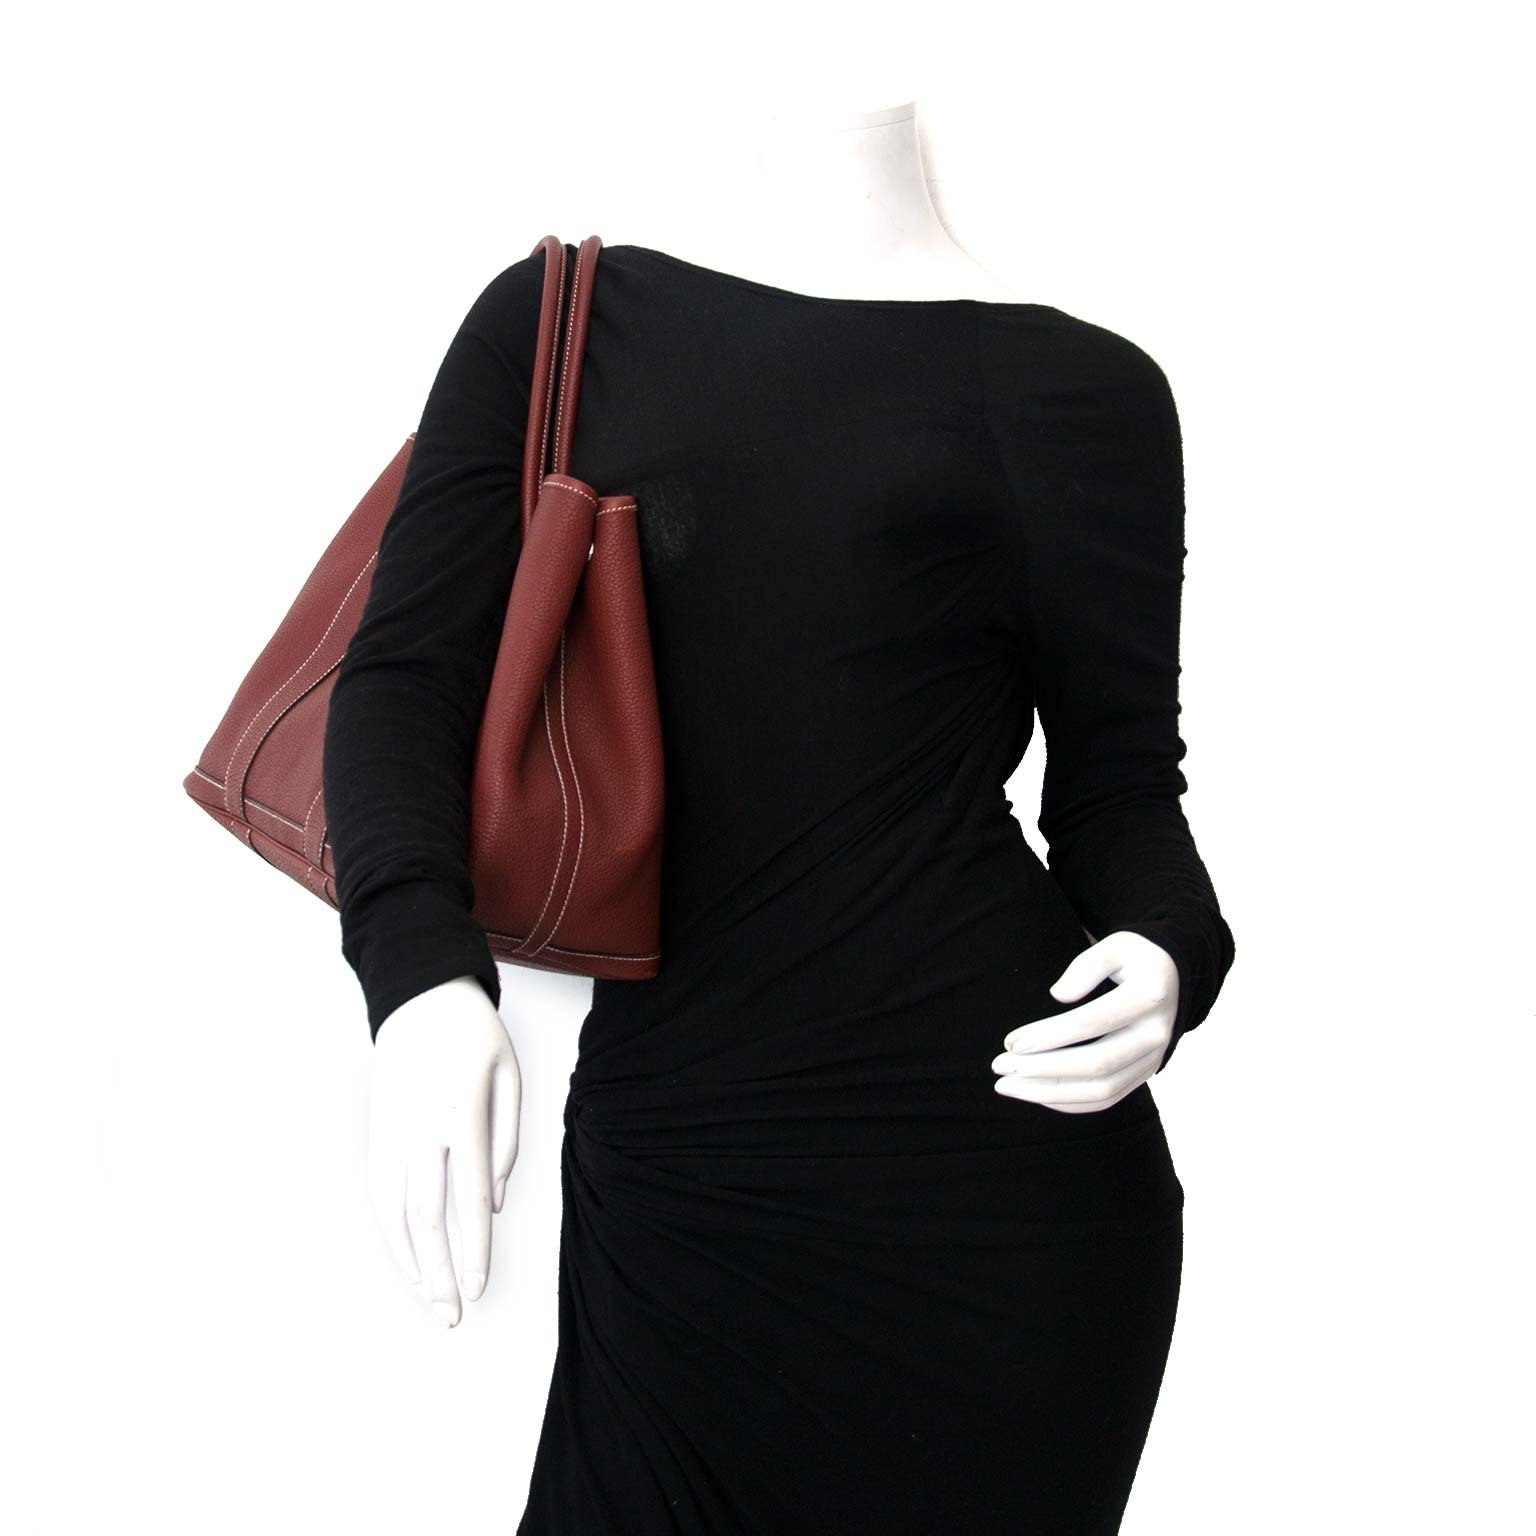 buy safe and secure online at labellov.com for the best price Hermes garden party bordeaux